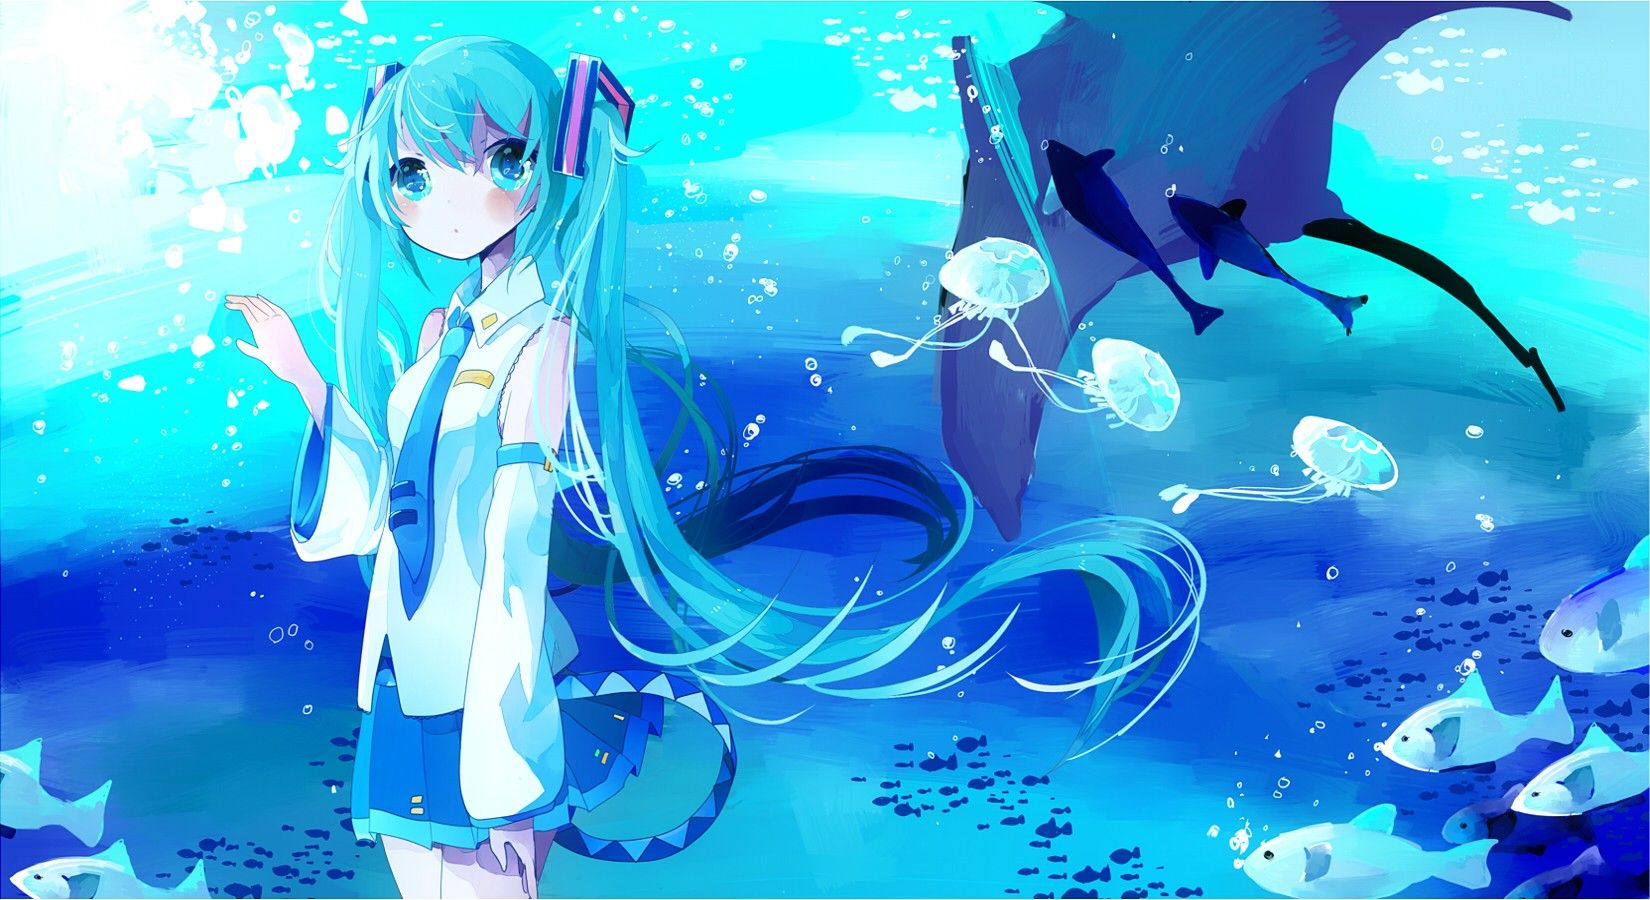 Vocaloid Hatsune Miku Fish Tie Skirts Long Hair Mantis